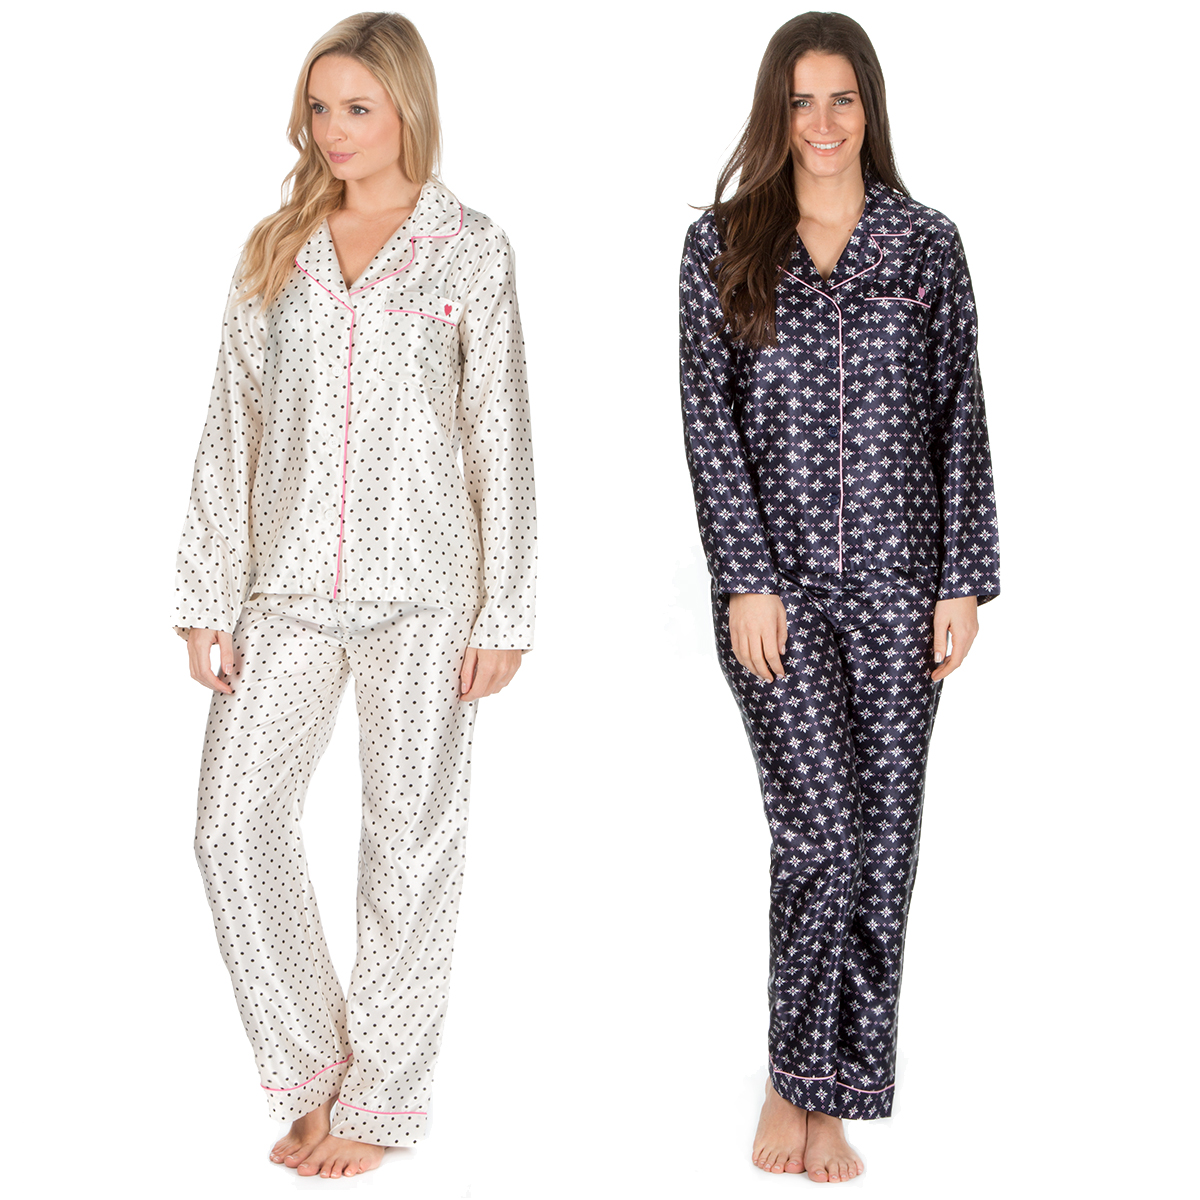 cc7cb4626fcb Ladies Long Sleeve Button Up Pyjama Shirt Top   Bottoms Satin PJ Set  Nightwear